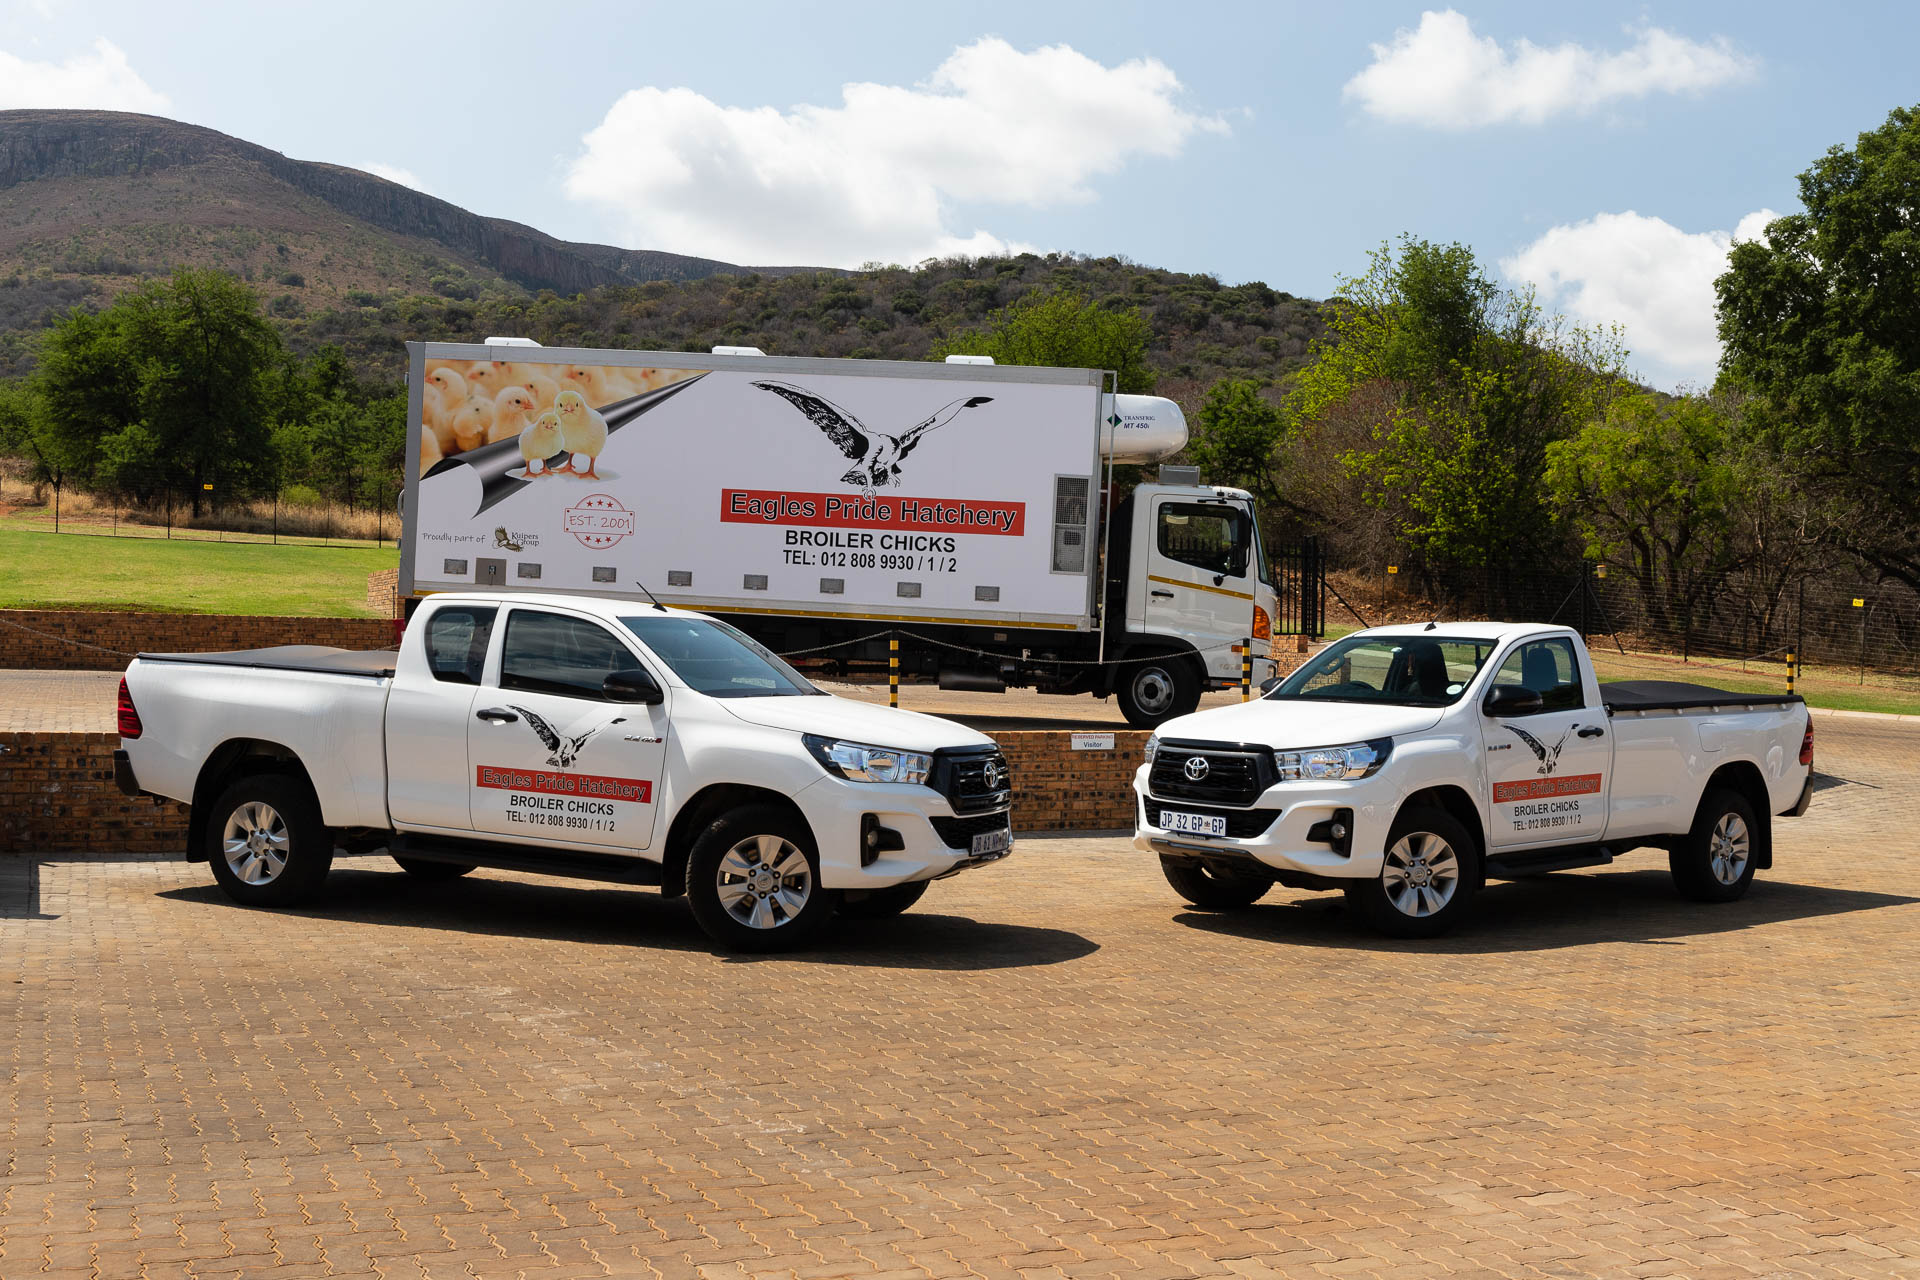 Vehicles branded with the Eagles Pride Hatchery Logo